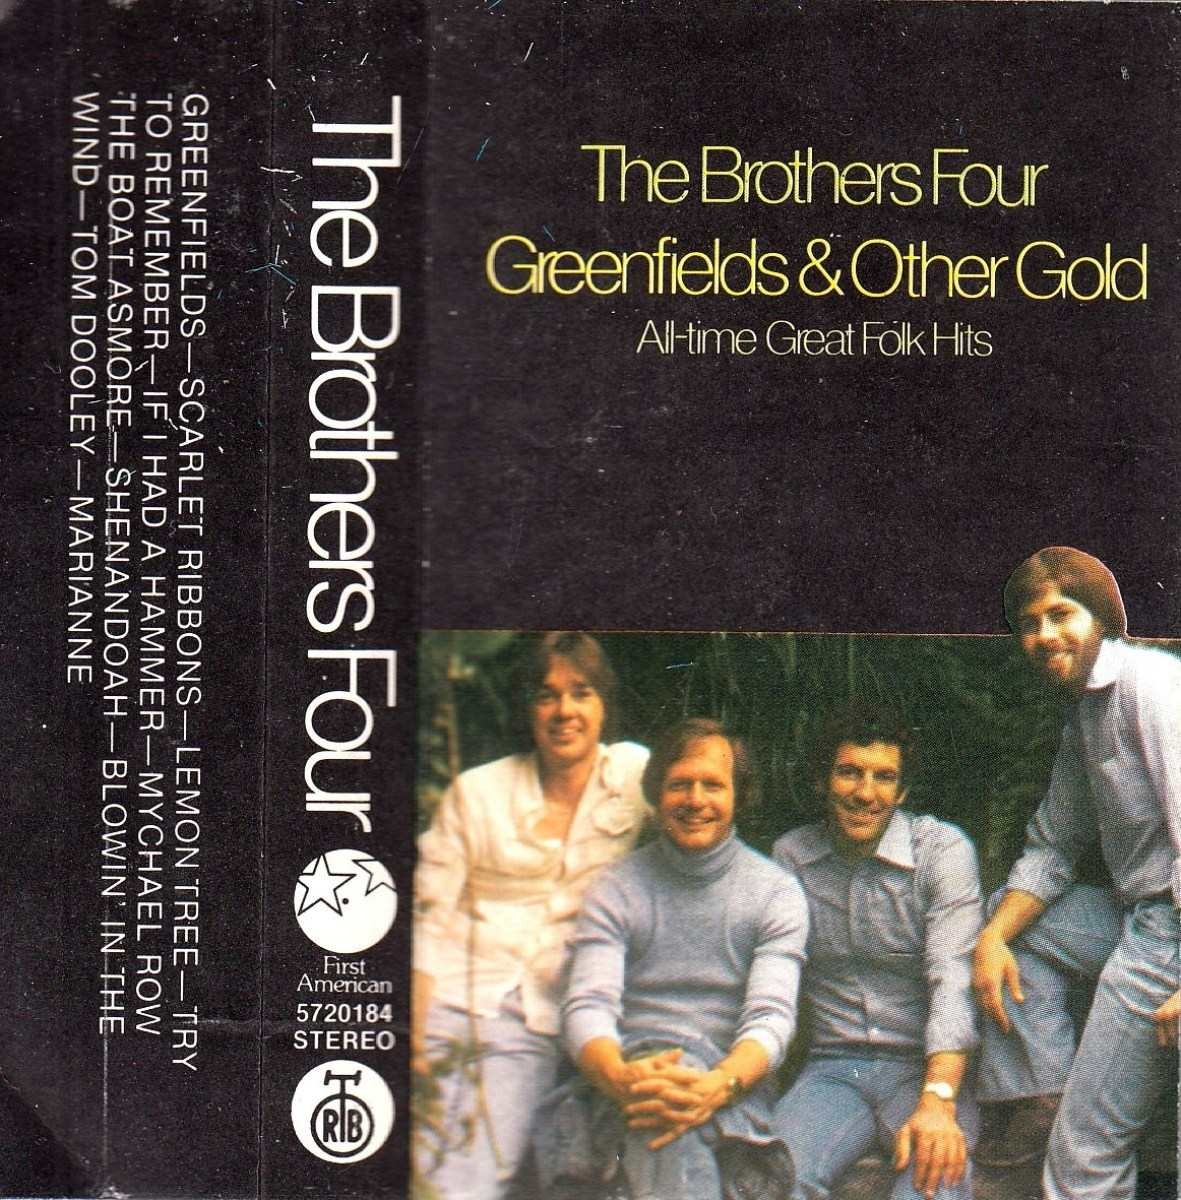 Brothers Four - Greenfields Other Gold - All Time Great Folk Hits